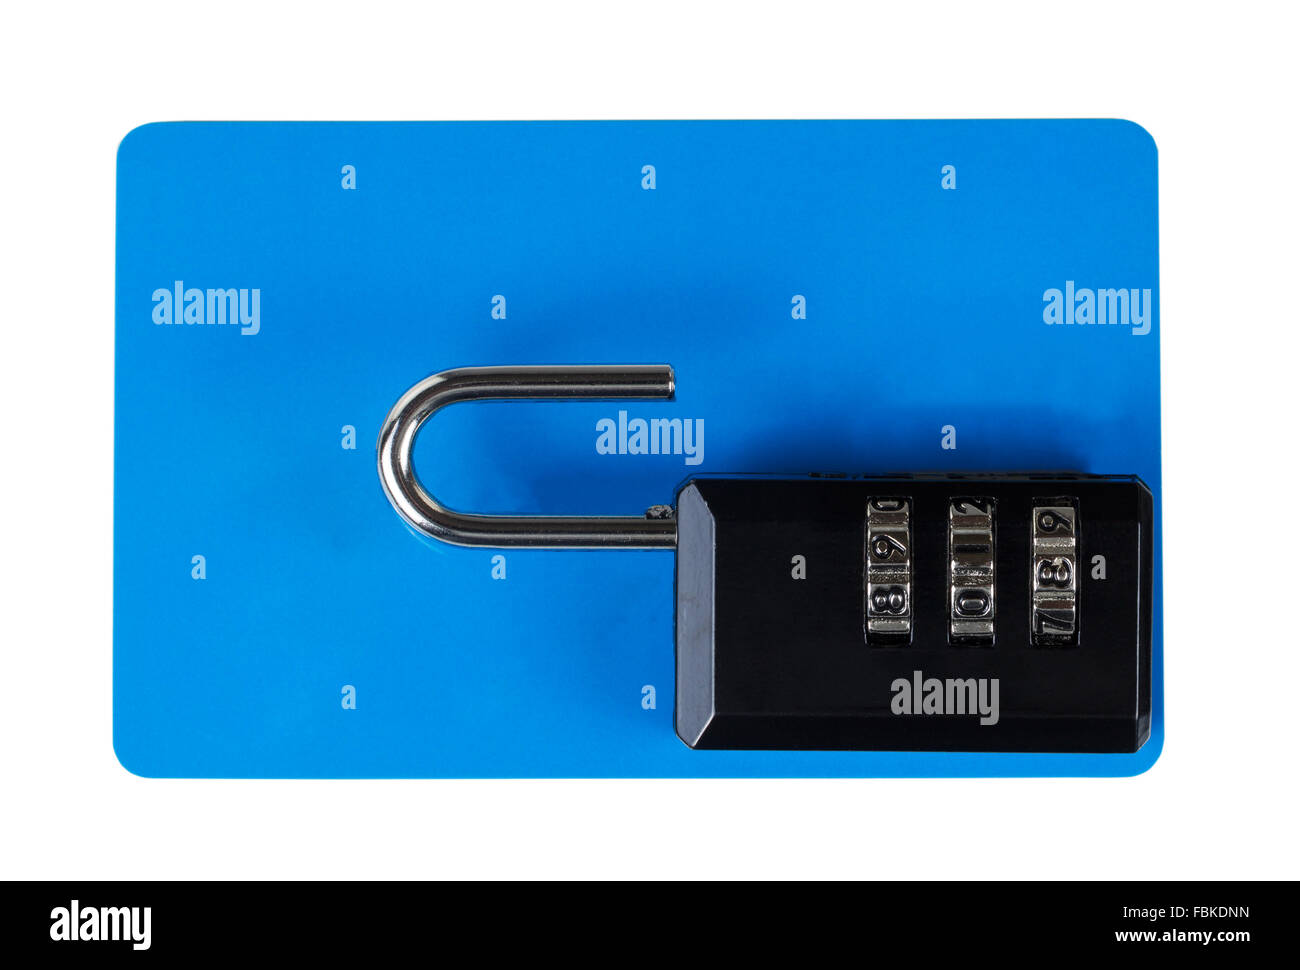 Blank plastic credit card with combination lock on top. Isolated on white. Security concept. - Stock Image